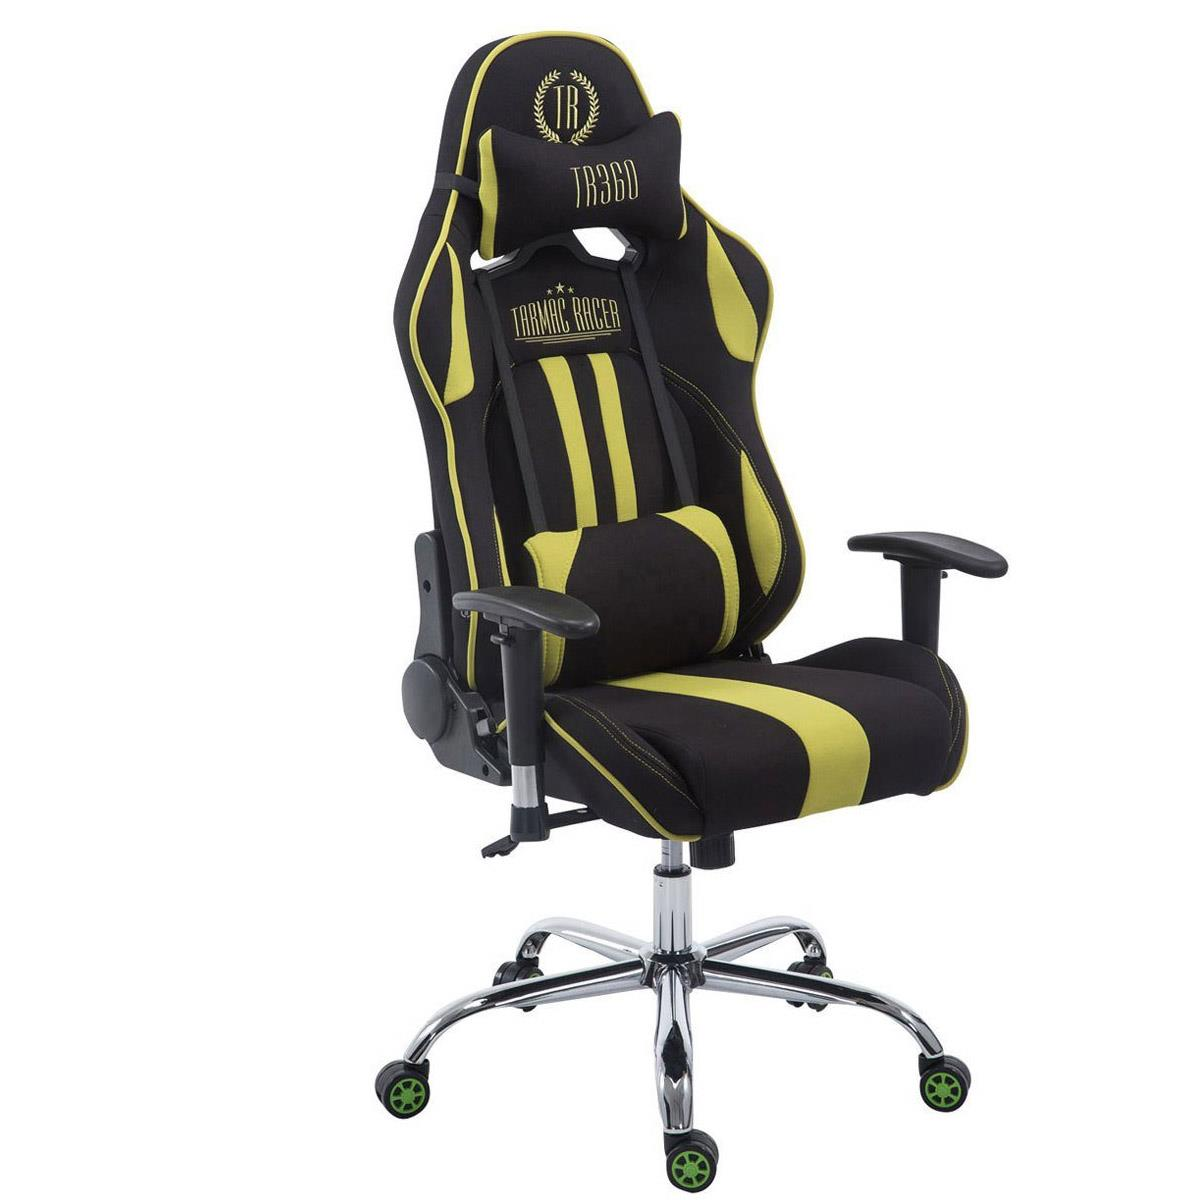 Silla Gaming LOGAN TELA, Respaldo Reclinable, Cojines Incluidos, Base de Metal, En Negro/Verde